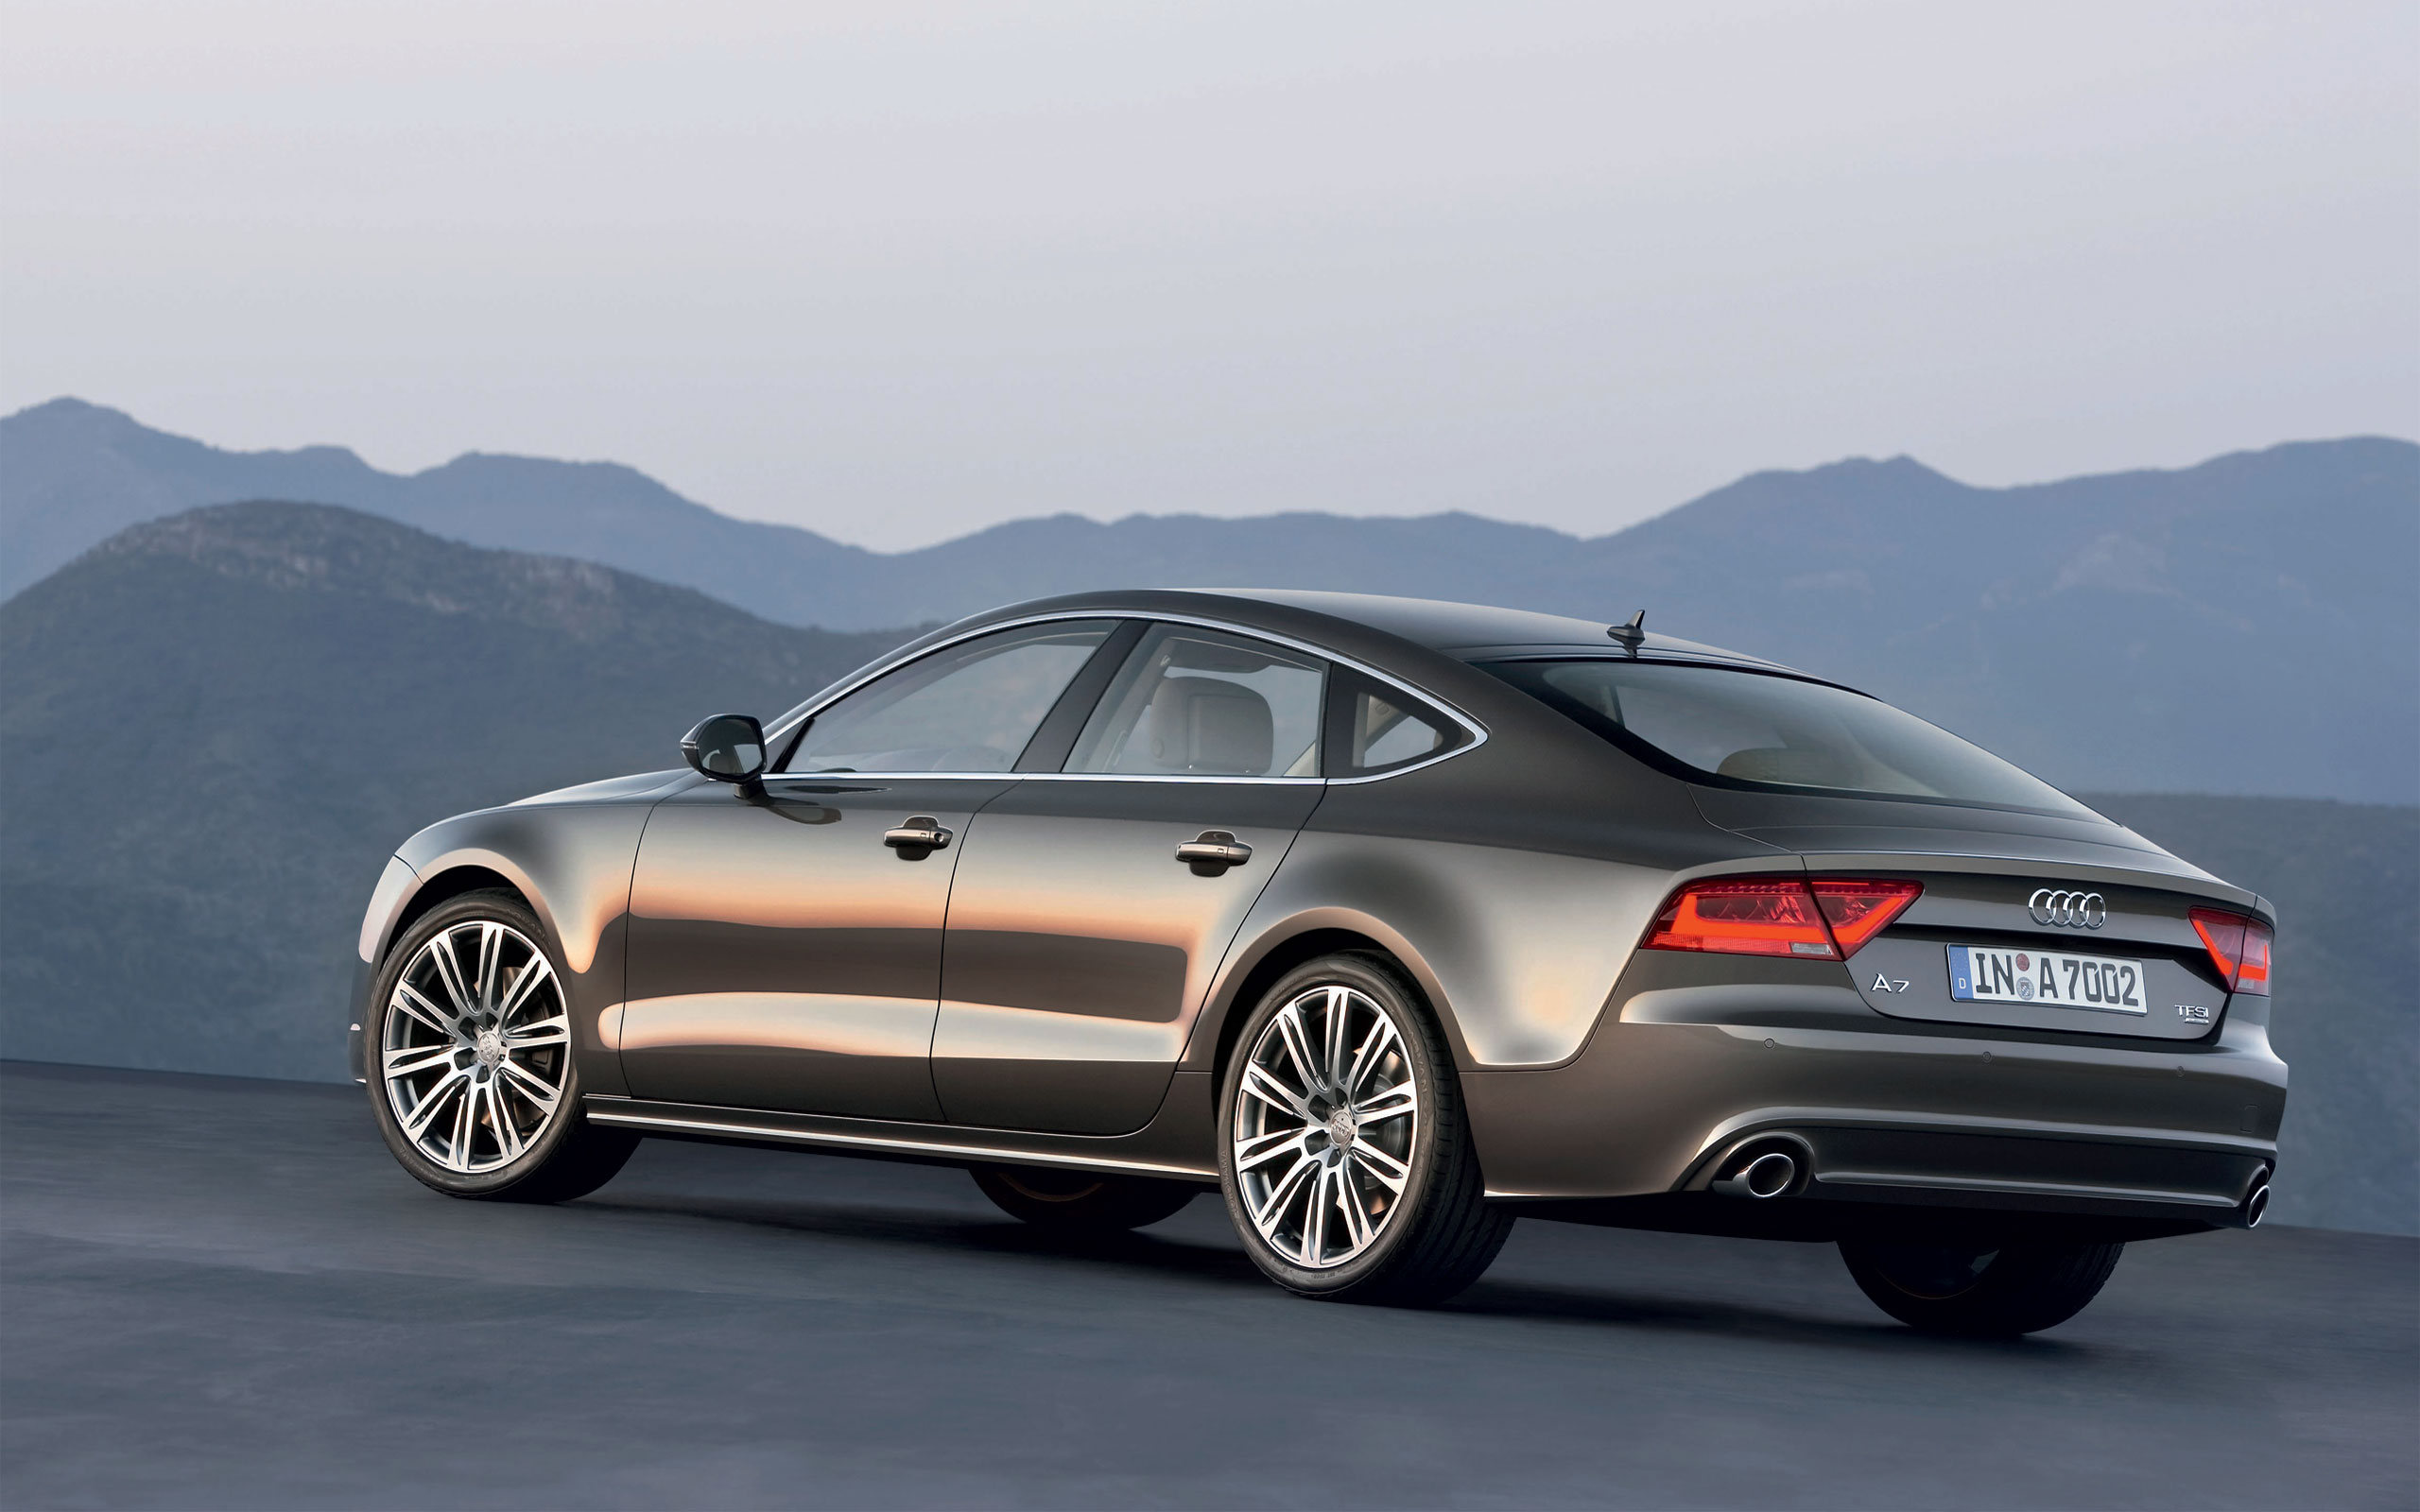 Audi A7 Wallpaper 43994 2560x1600 Px Hdwallsource Com